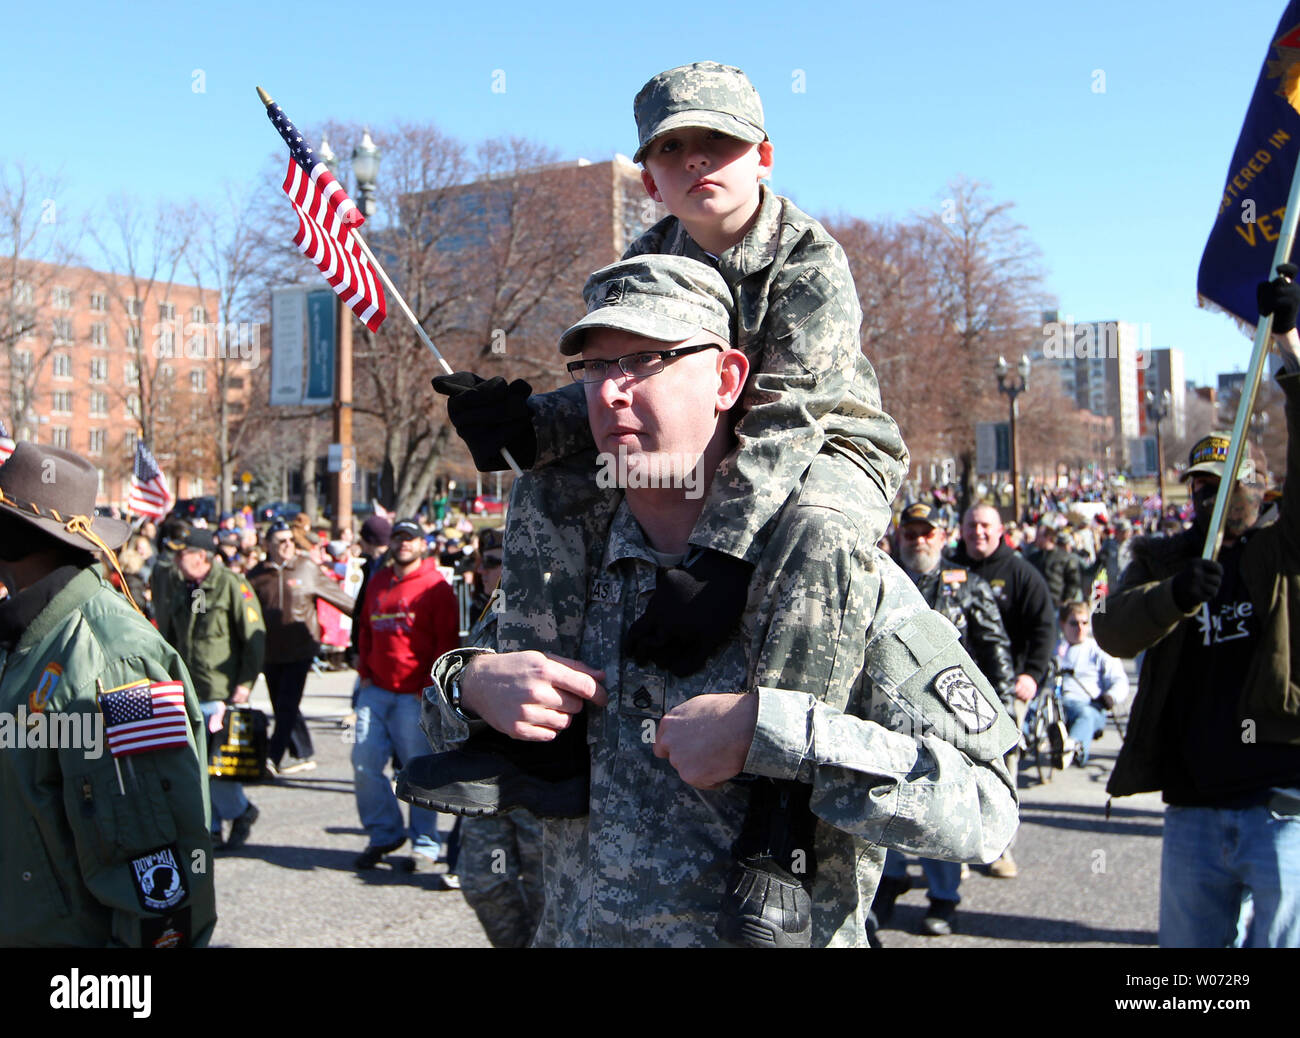 Veterans march during a parade in St. Louis on January 28, 2012. Thousands of people lined a parade route in downtown St. Louis for the nationÕs first parade to honor those who have served in Iraq and Afghanistan. UPI/Bill Greenblatt - Stock Image